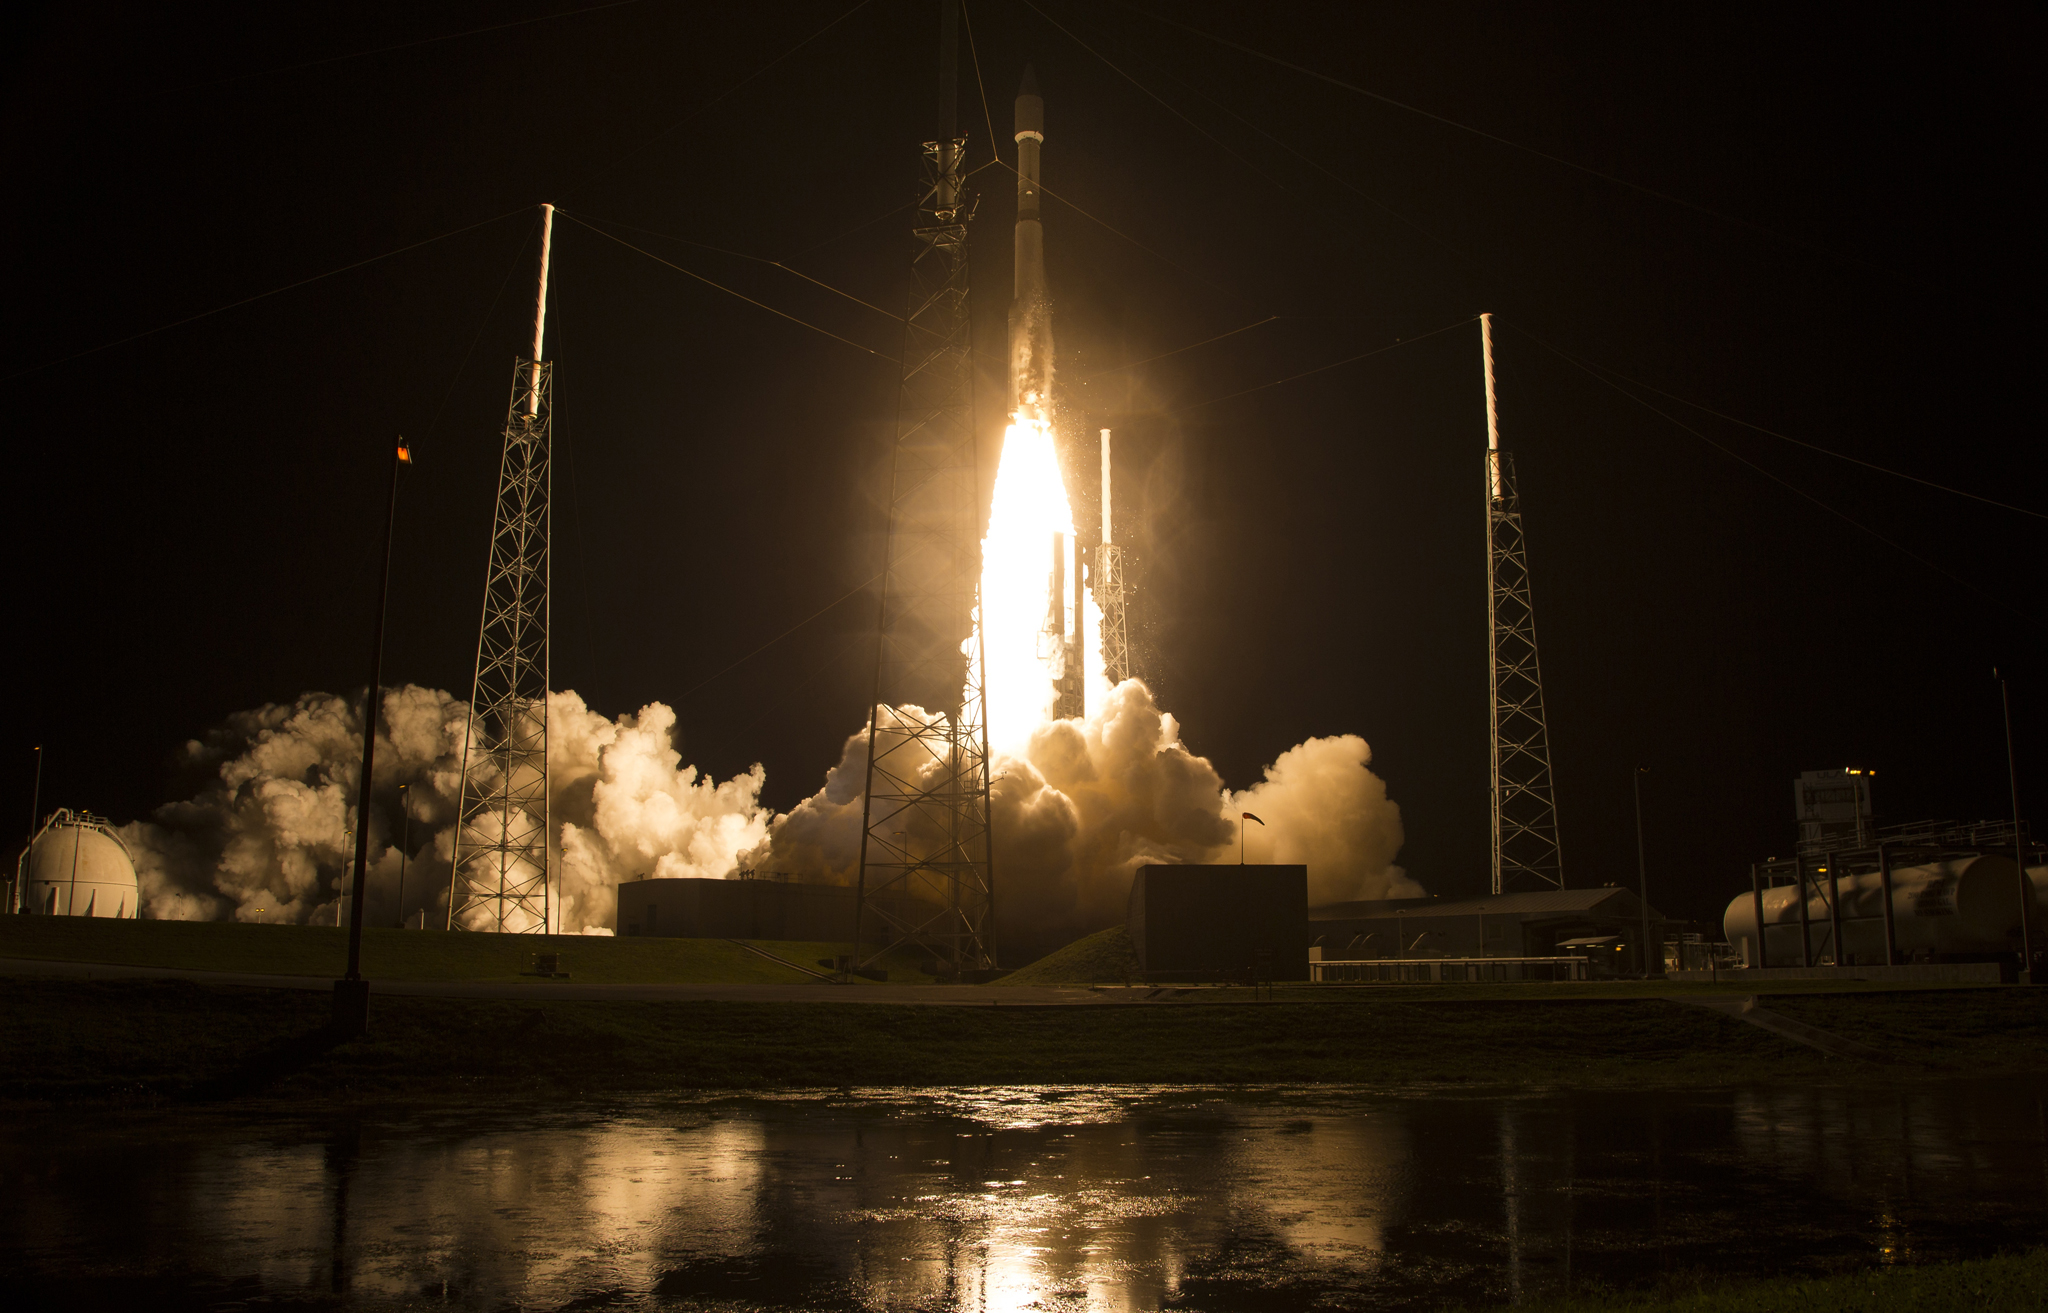 the United Launch Alliance Atlas V rocket with NASA's Magnetospheric Multiscale (MMS) spacecraft onboard launches from the Air Force Station Space Launch Complex 41 March 12, 2015 in Cape Canaveral, Florida. NASA's MMS mission will study how magnetic fields around Earth connect and disconnect, explosively releasing energy via a process known as magnetic reconnection. MMS consists of four identical spacecraft that work together to provide the first three-dimensional view of this fundamental process, which occurs throughout the universe.